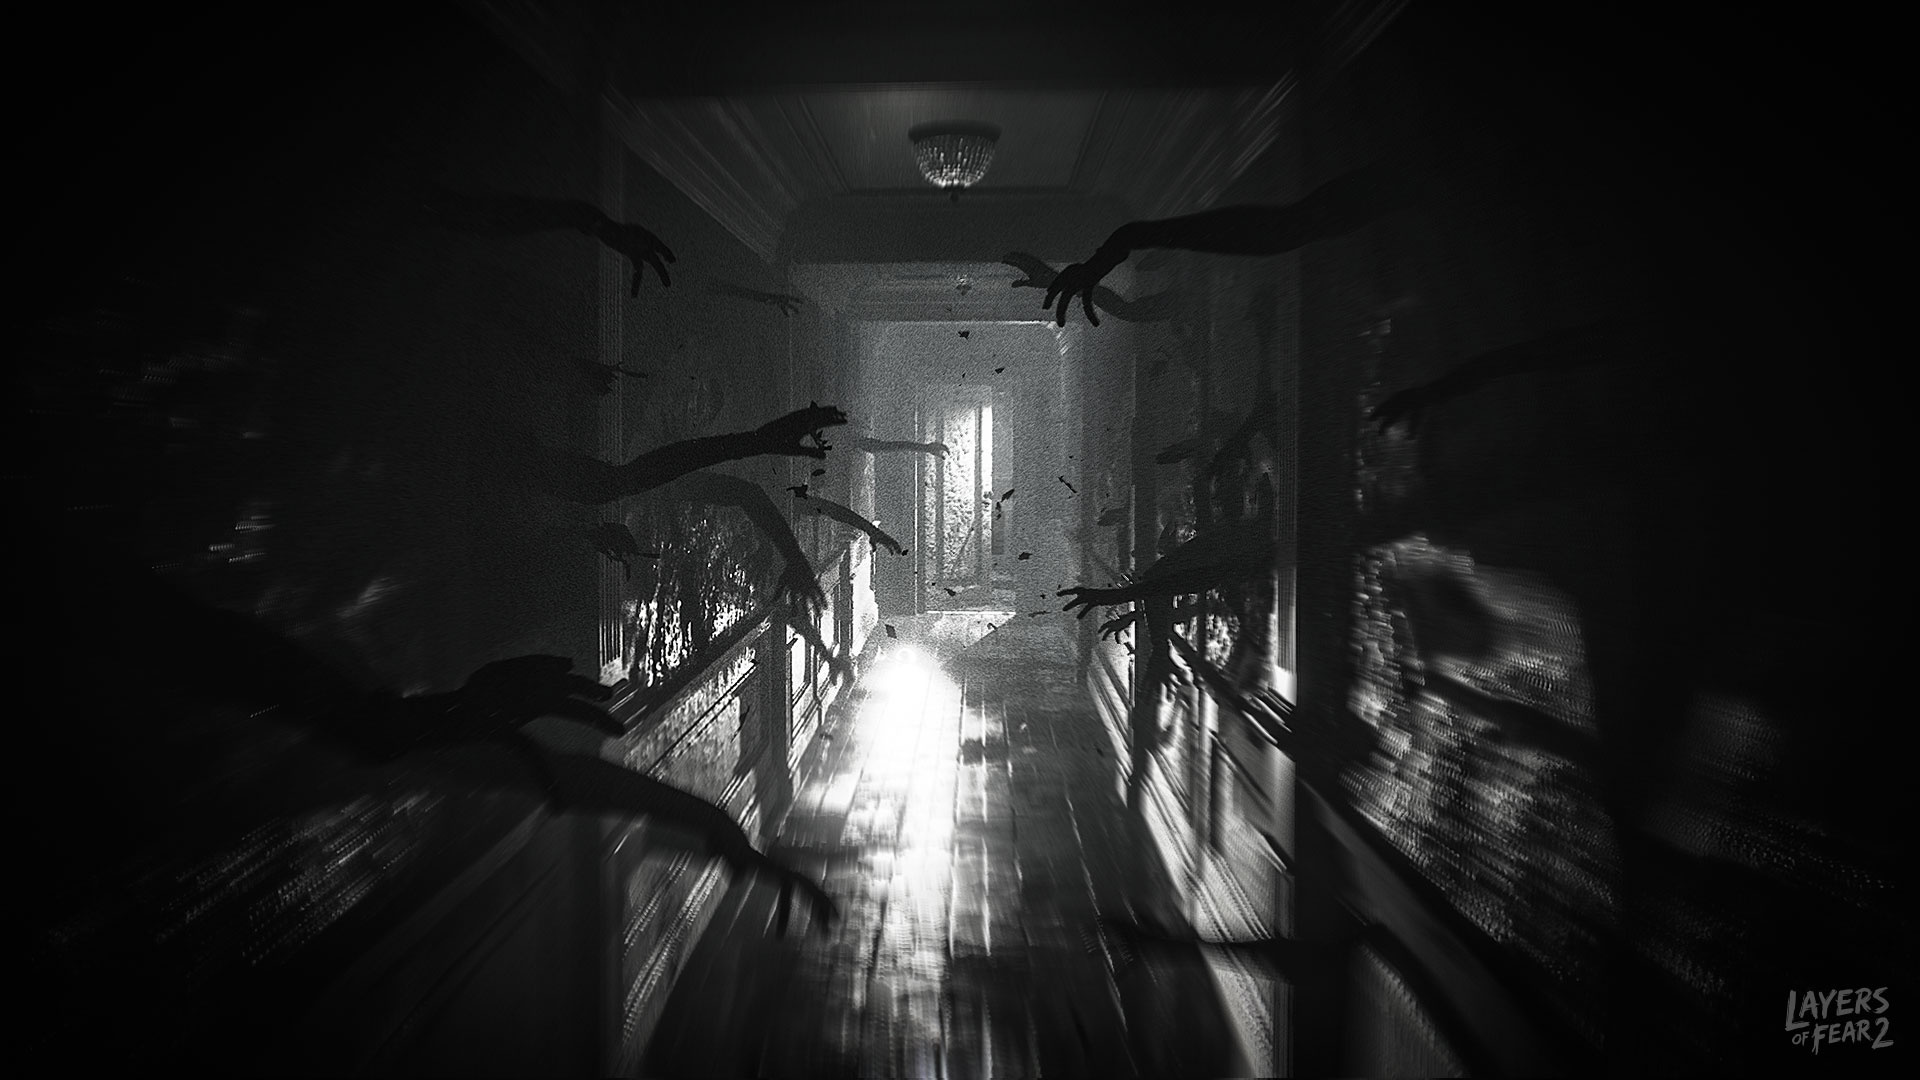 Layers of Fear 2 Raises the Tension on PS4 in May